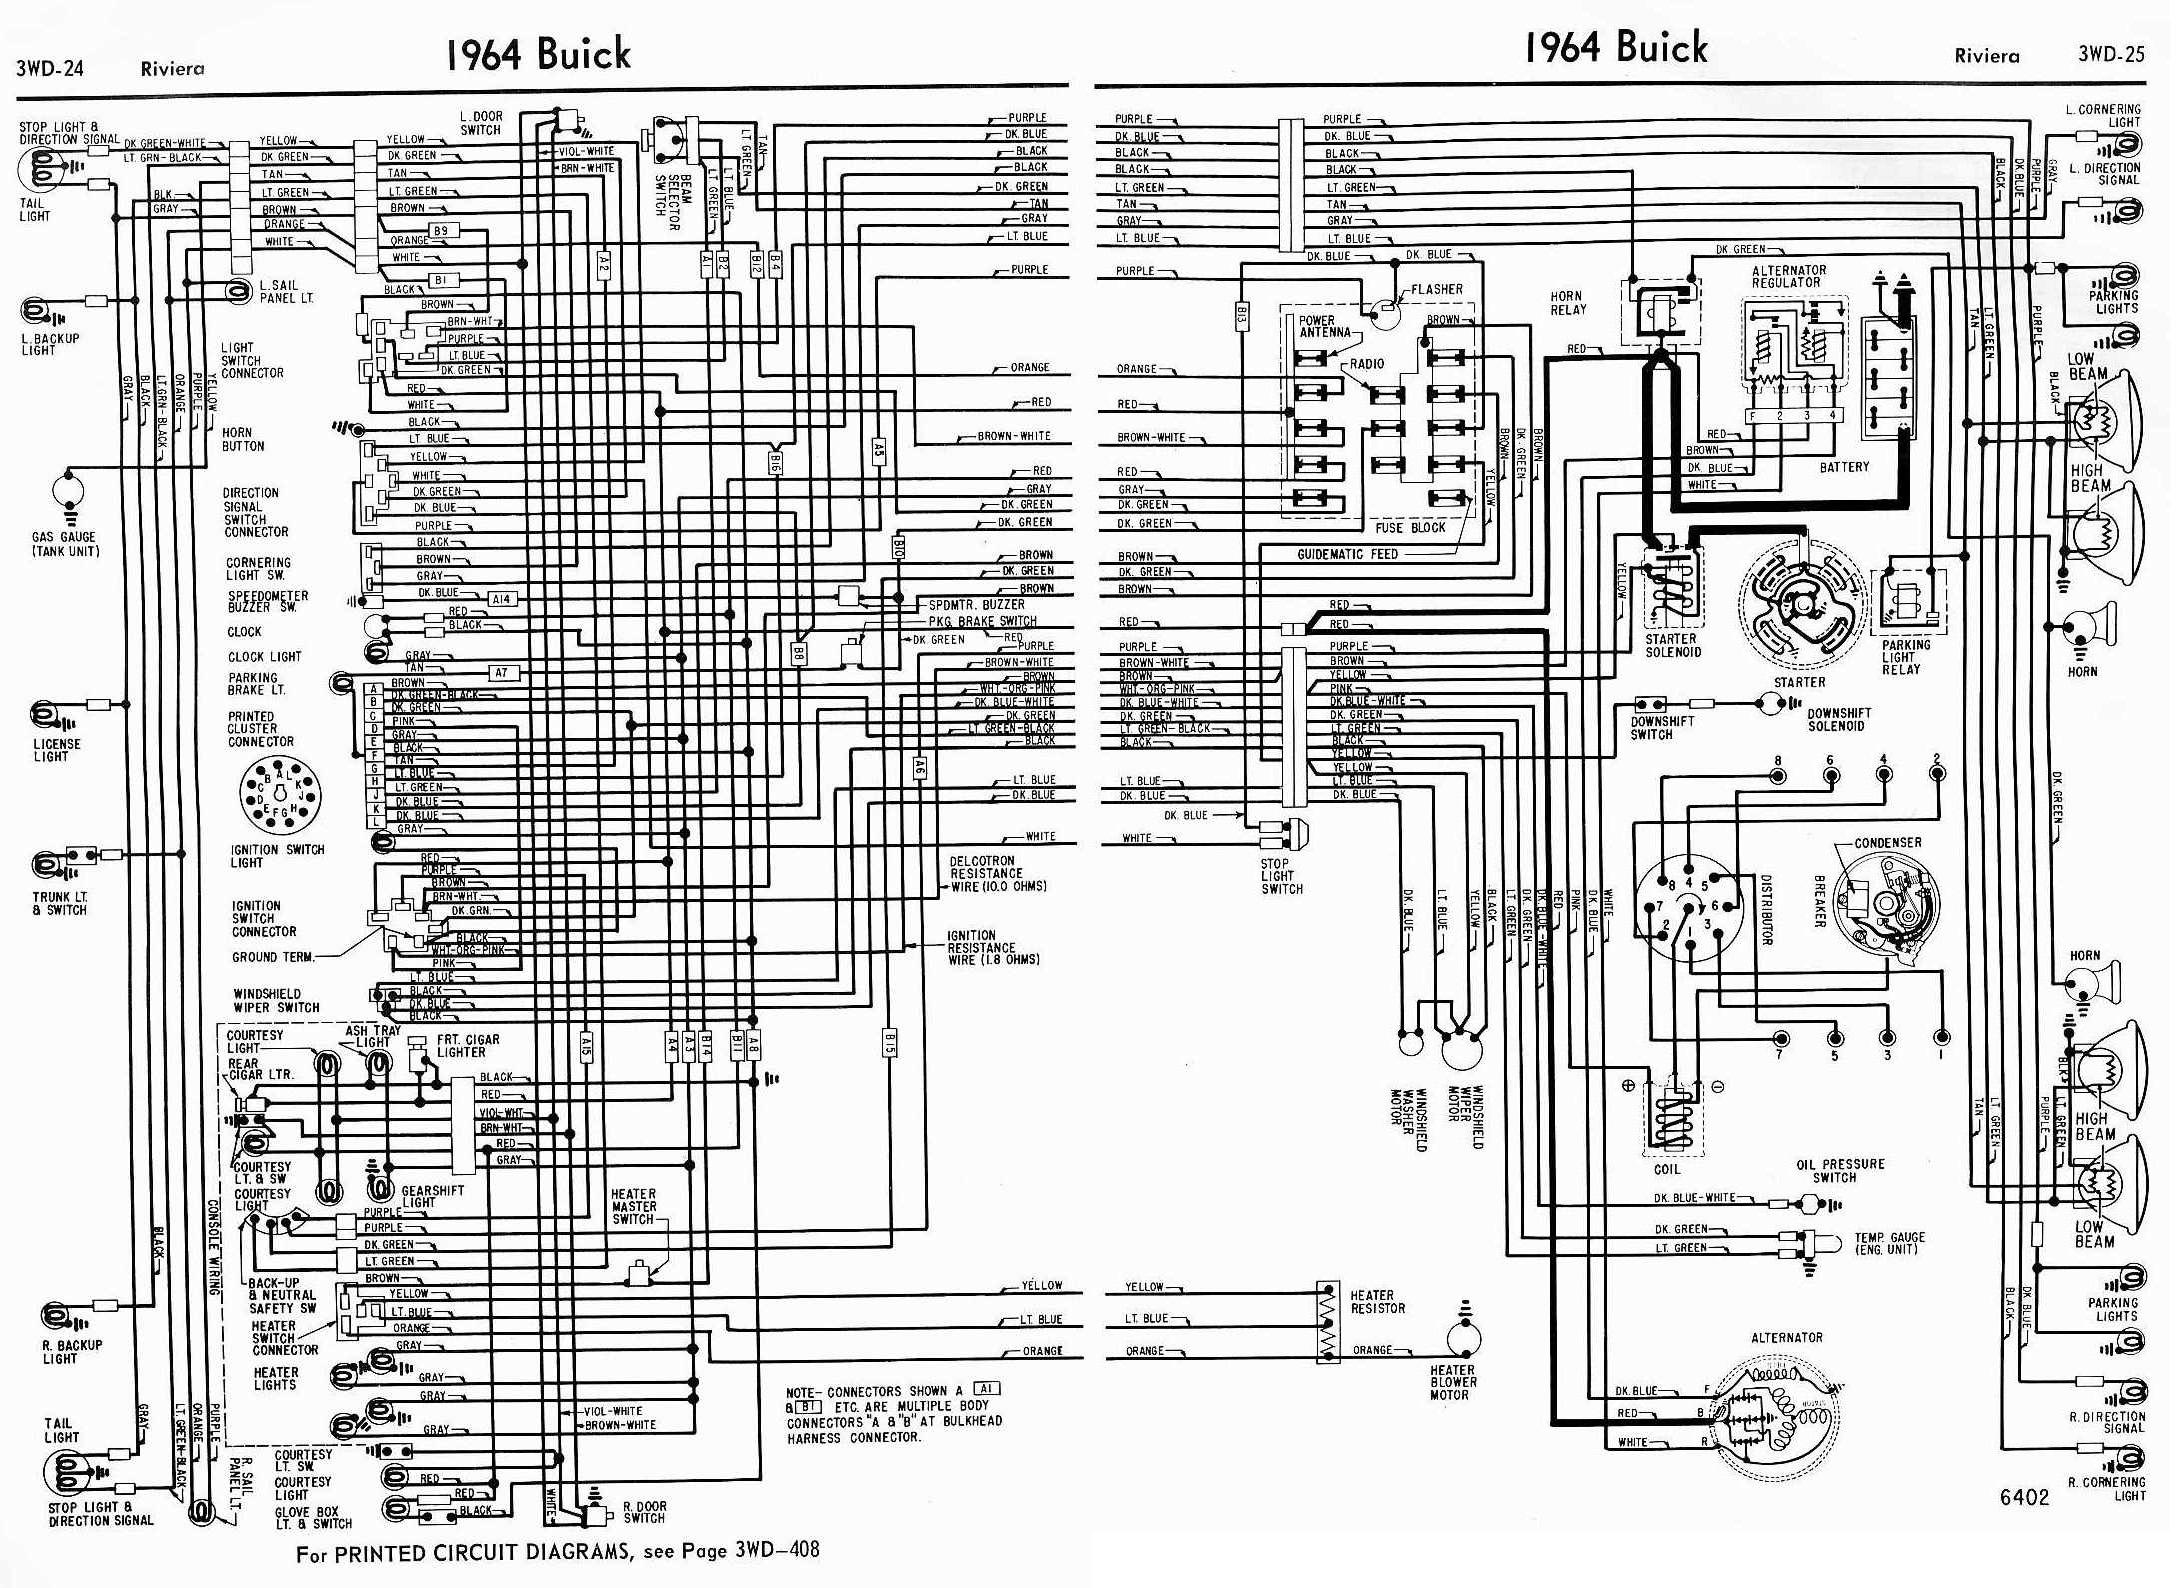 wiring-diagram-for-1964-buick-riviera.thumb.jpg.